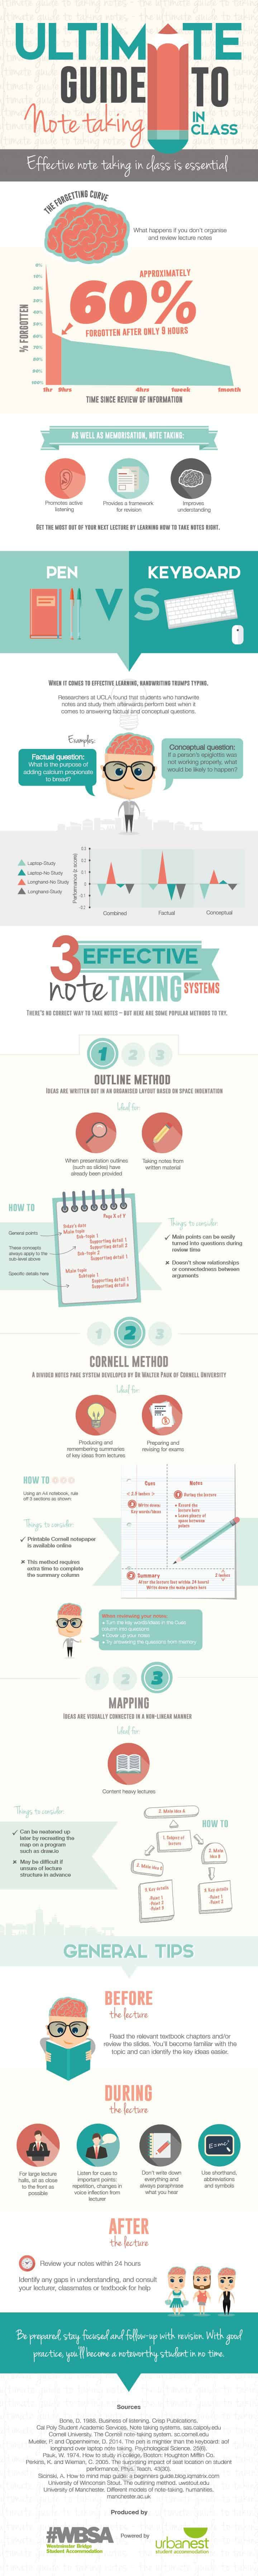 The Ultimate Guide to Note Taking